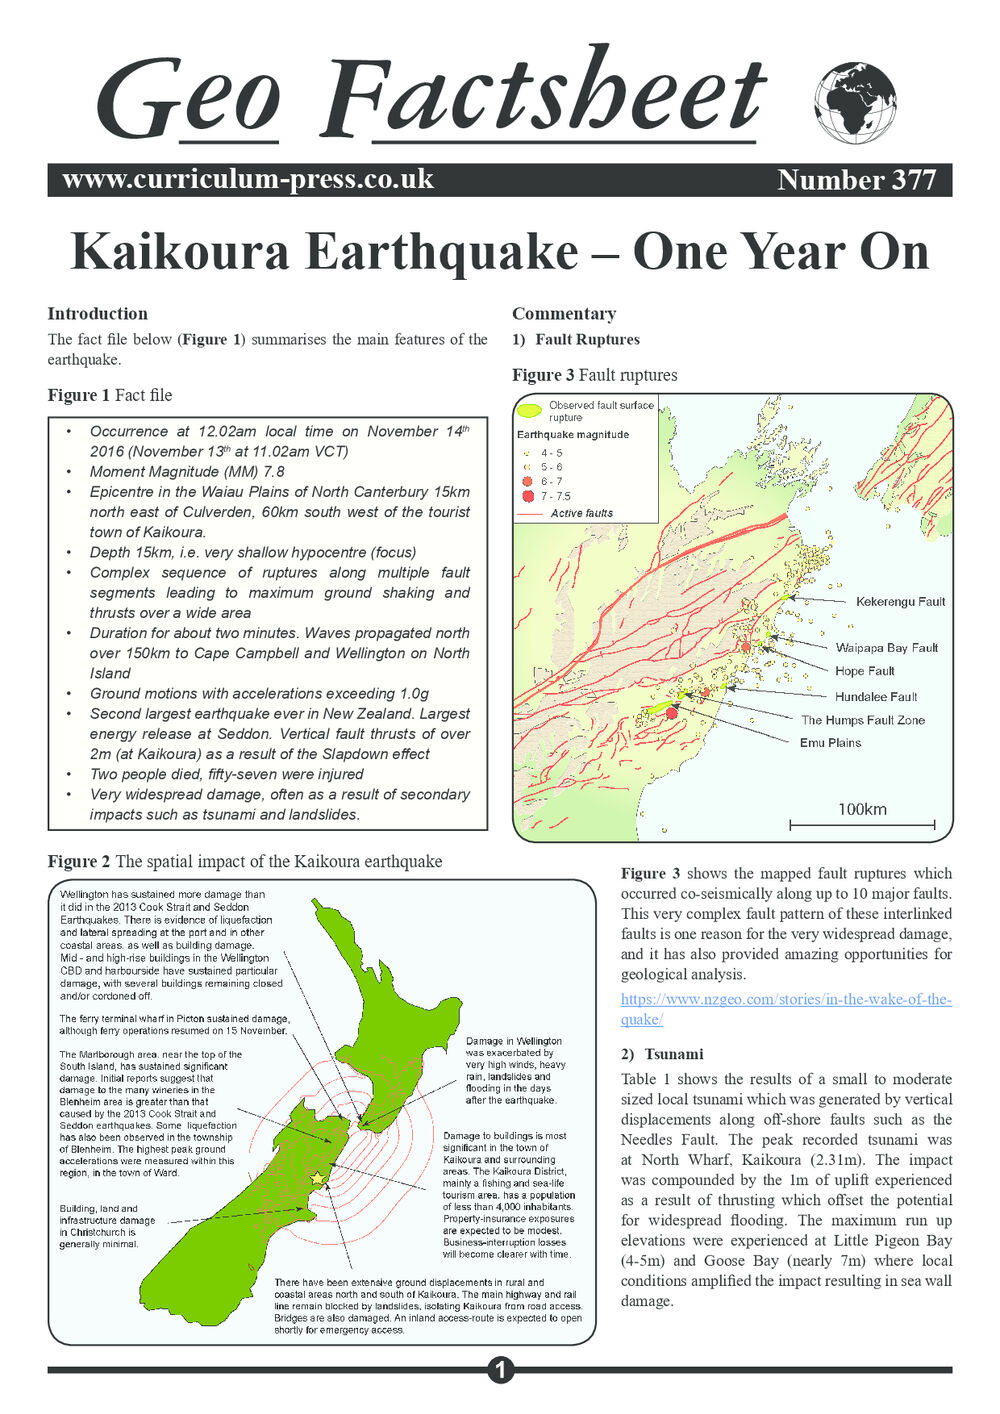 Kaikoura Earthquake – One Year On